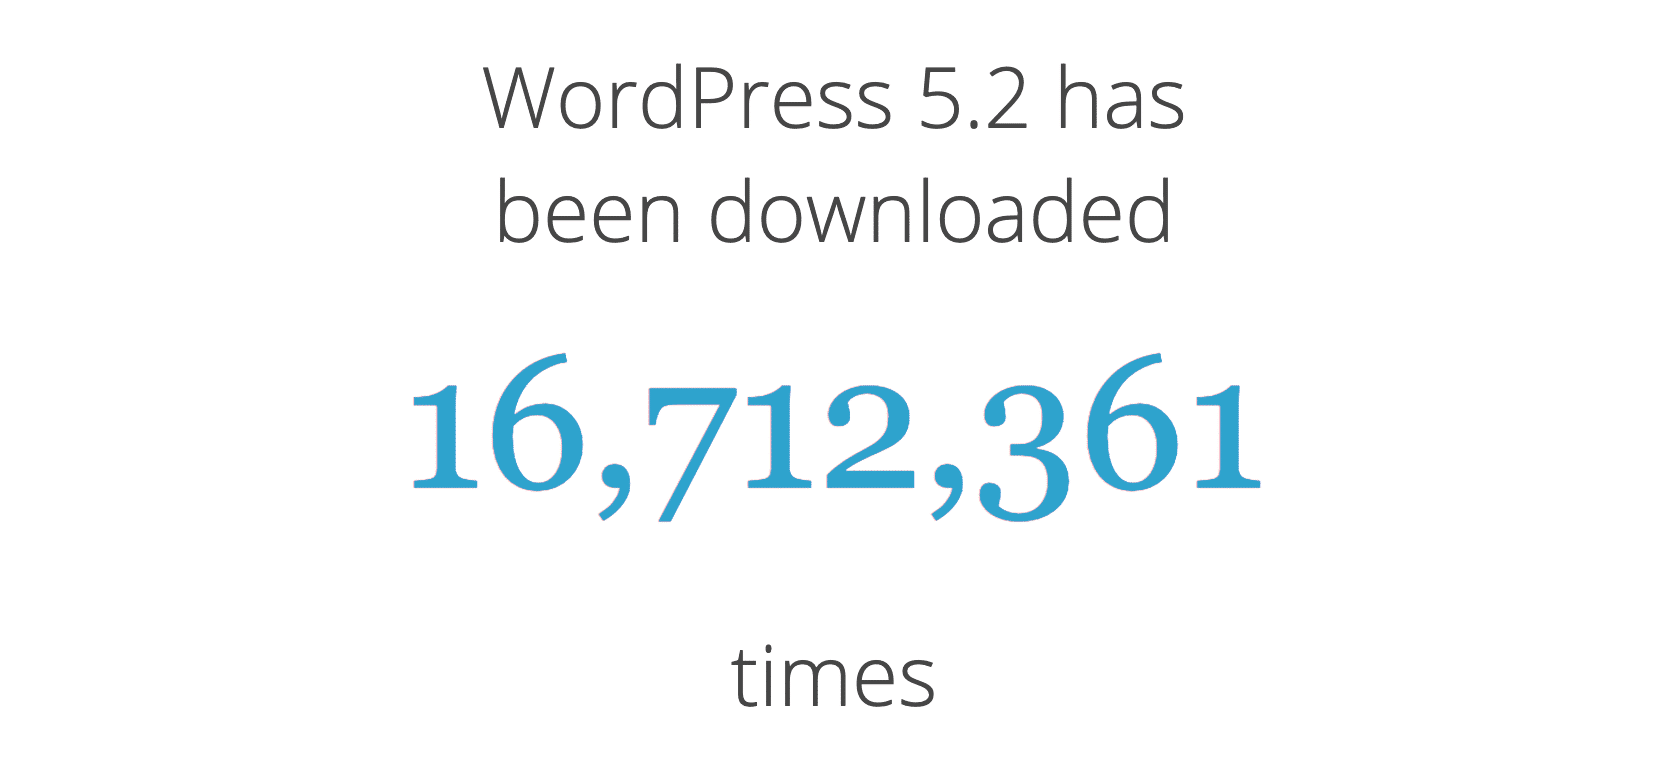 WordPress 5.2 download count